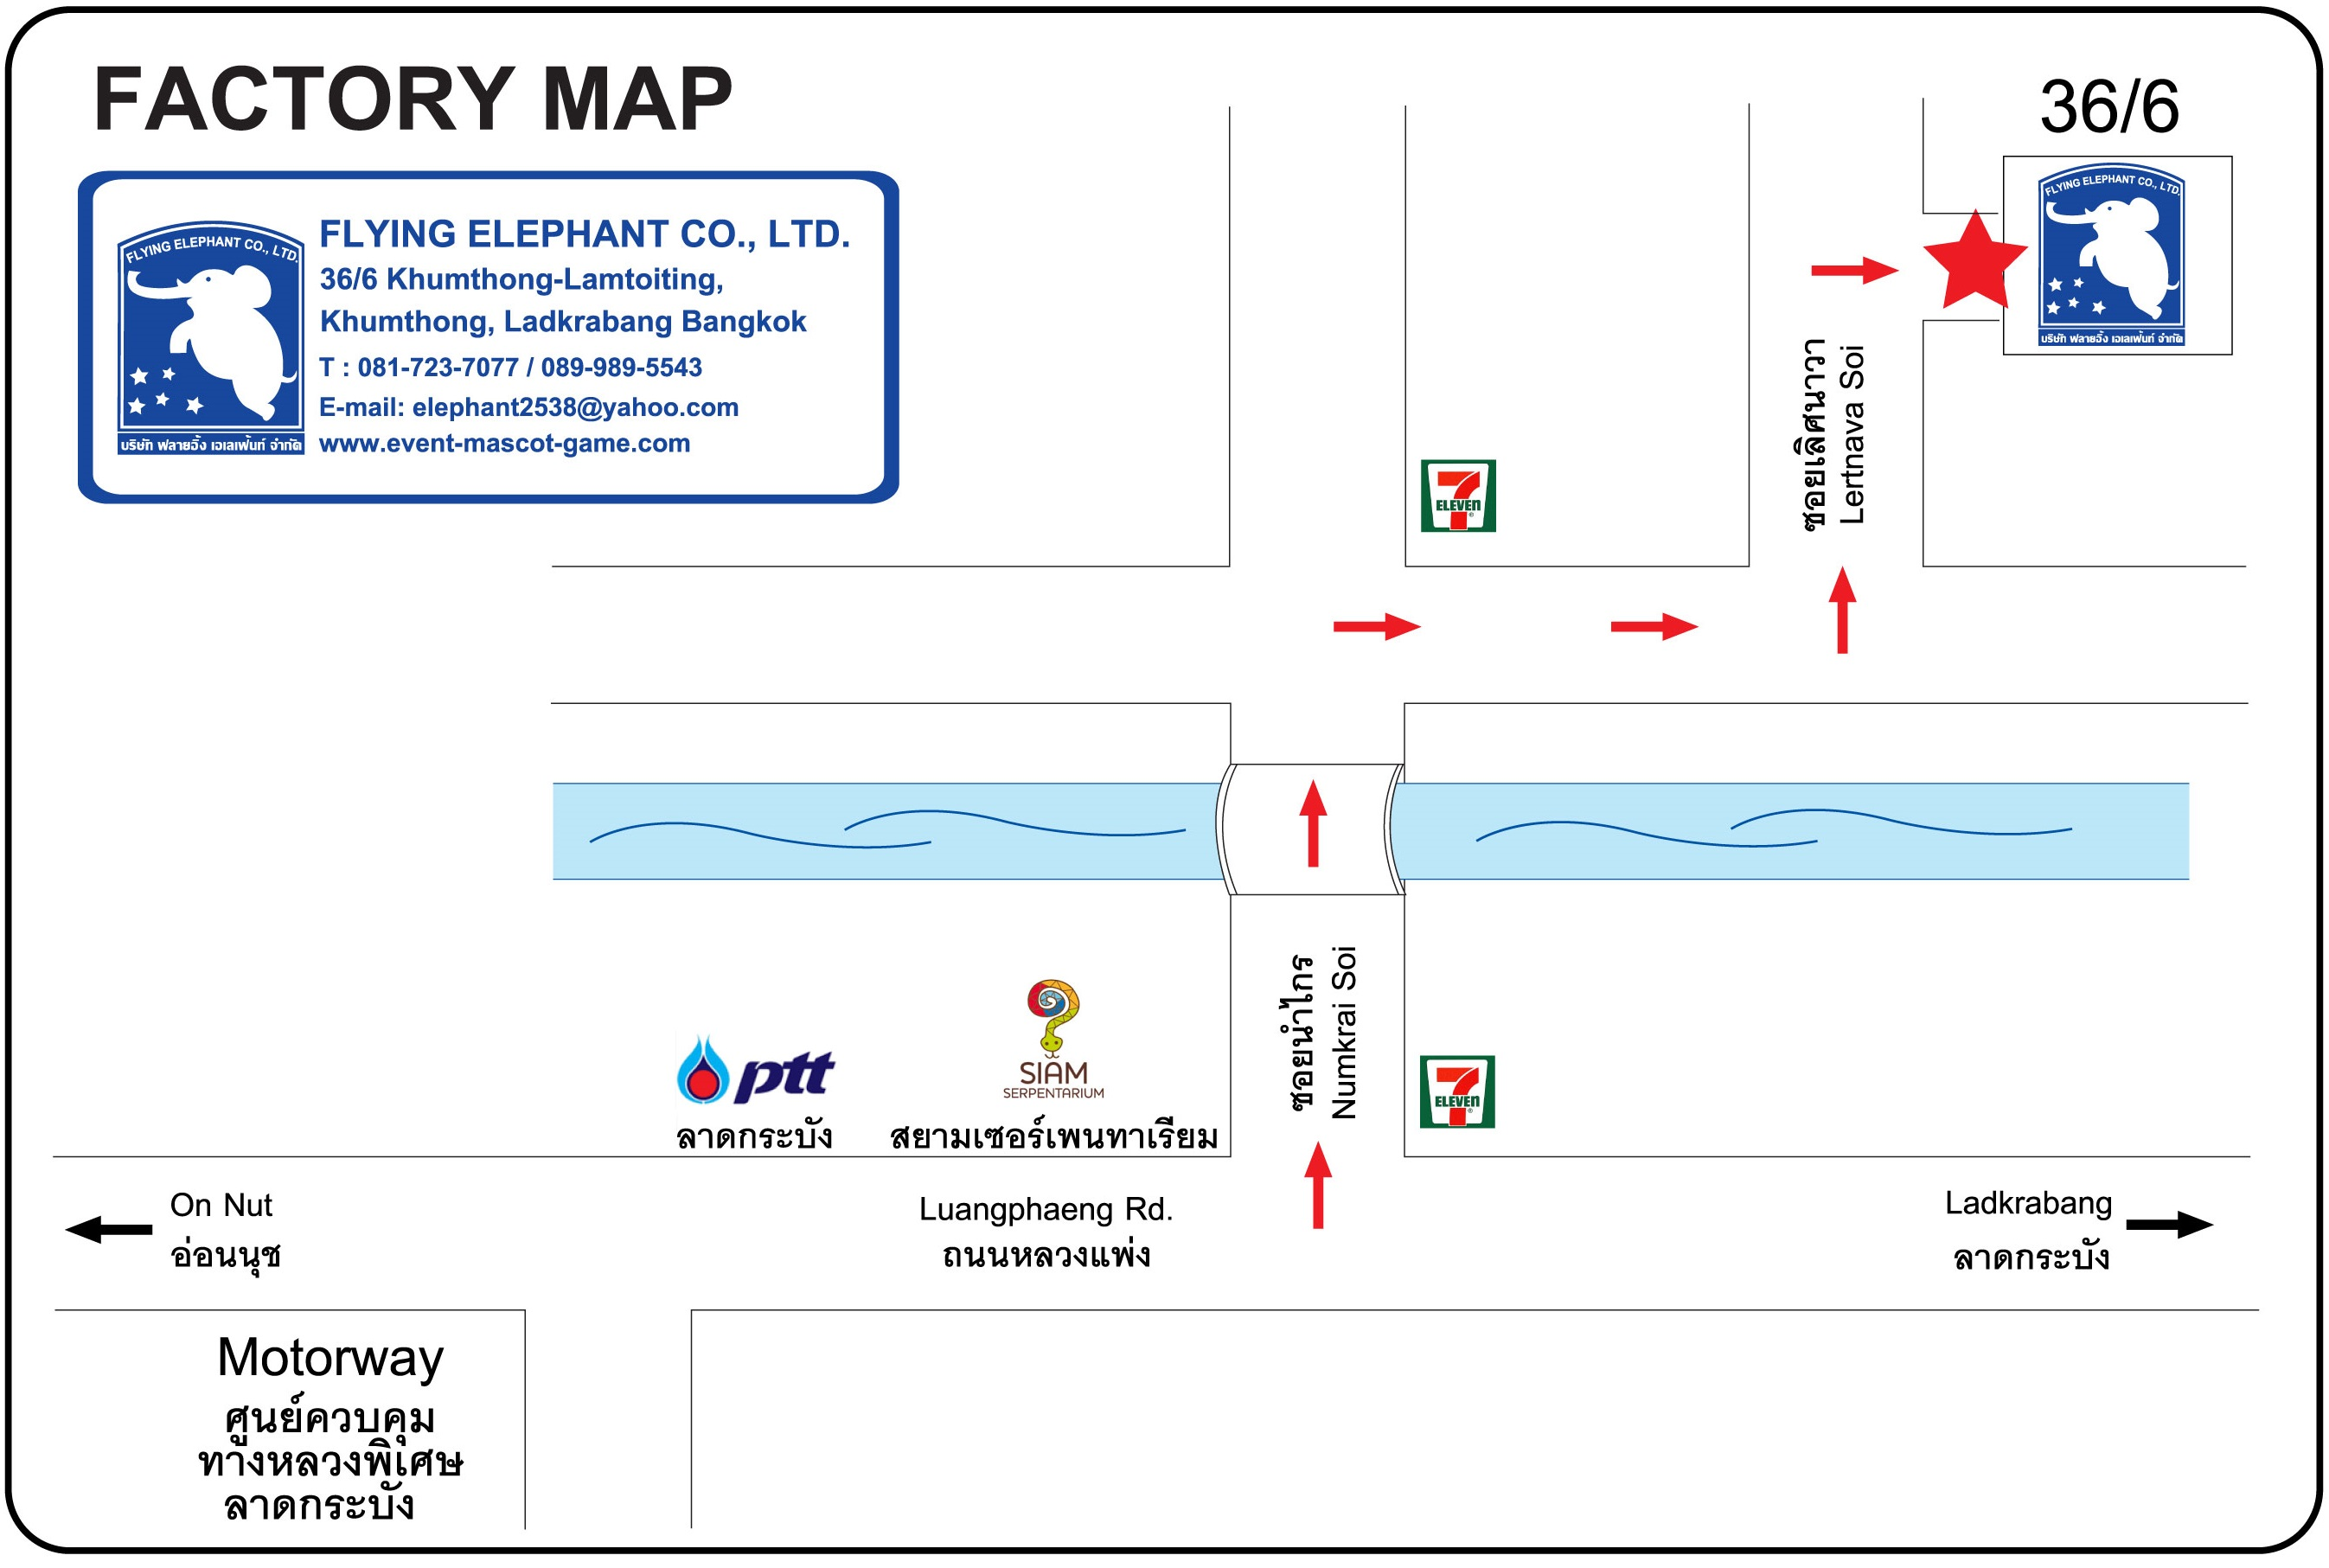 Rangsit Factory Map